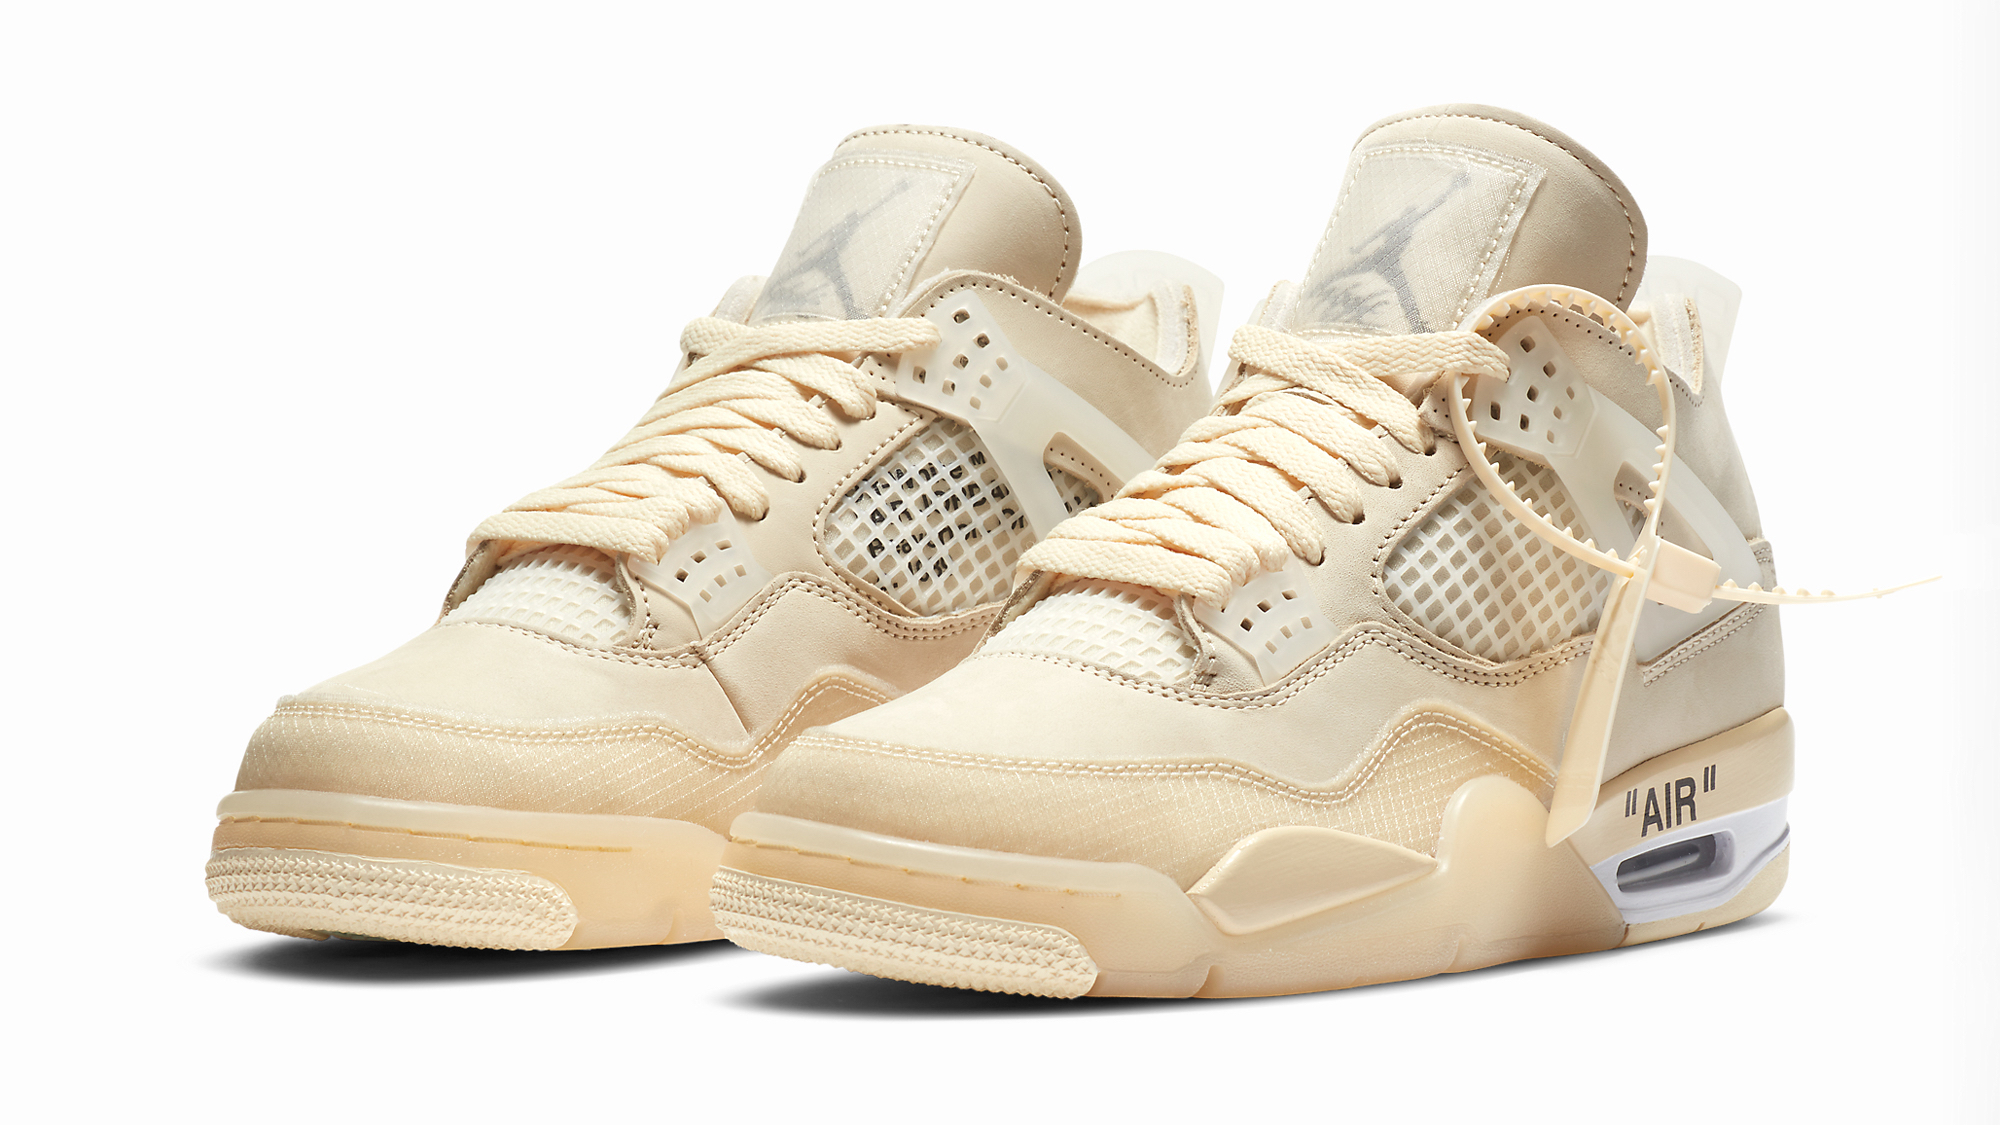 How to Get Your Hands on the Women's Off-White Air Jordan 4s ...